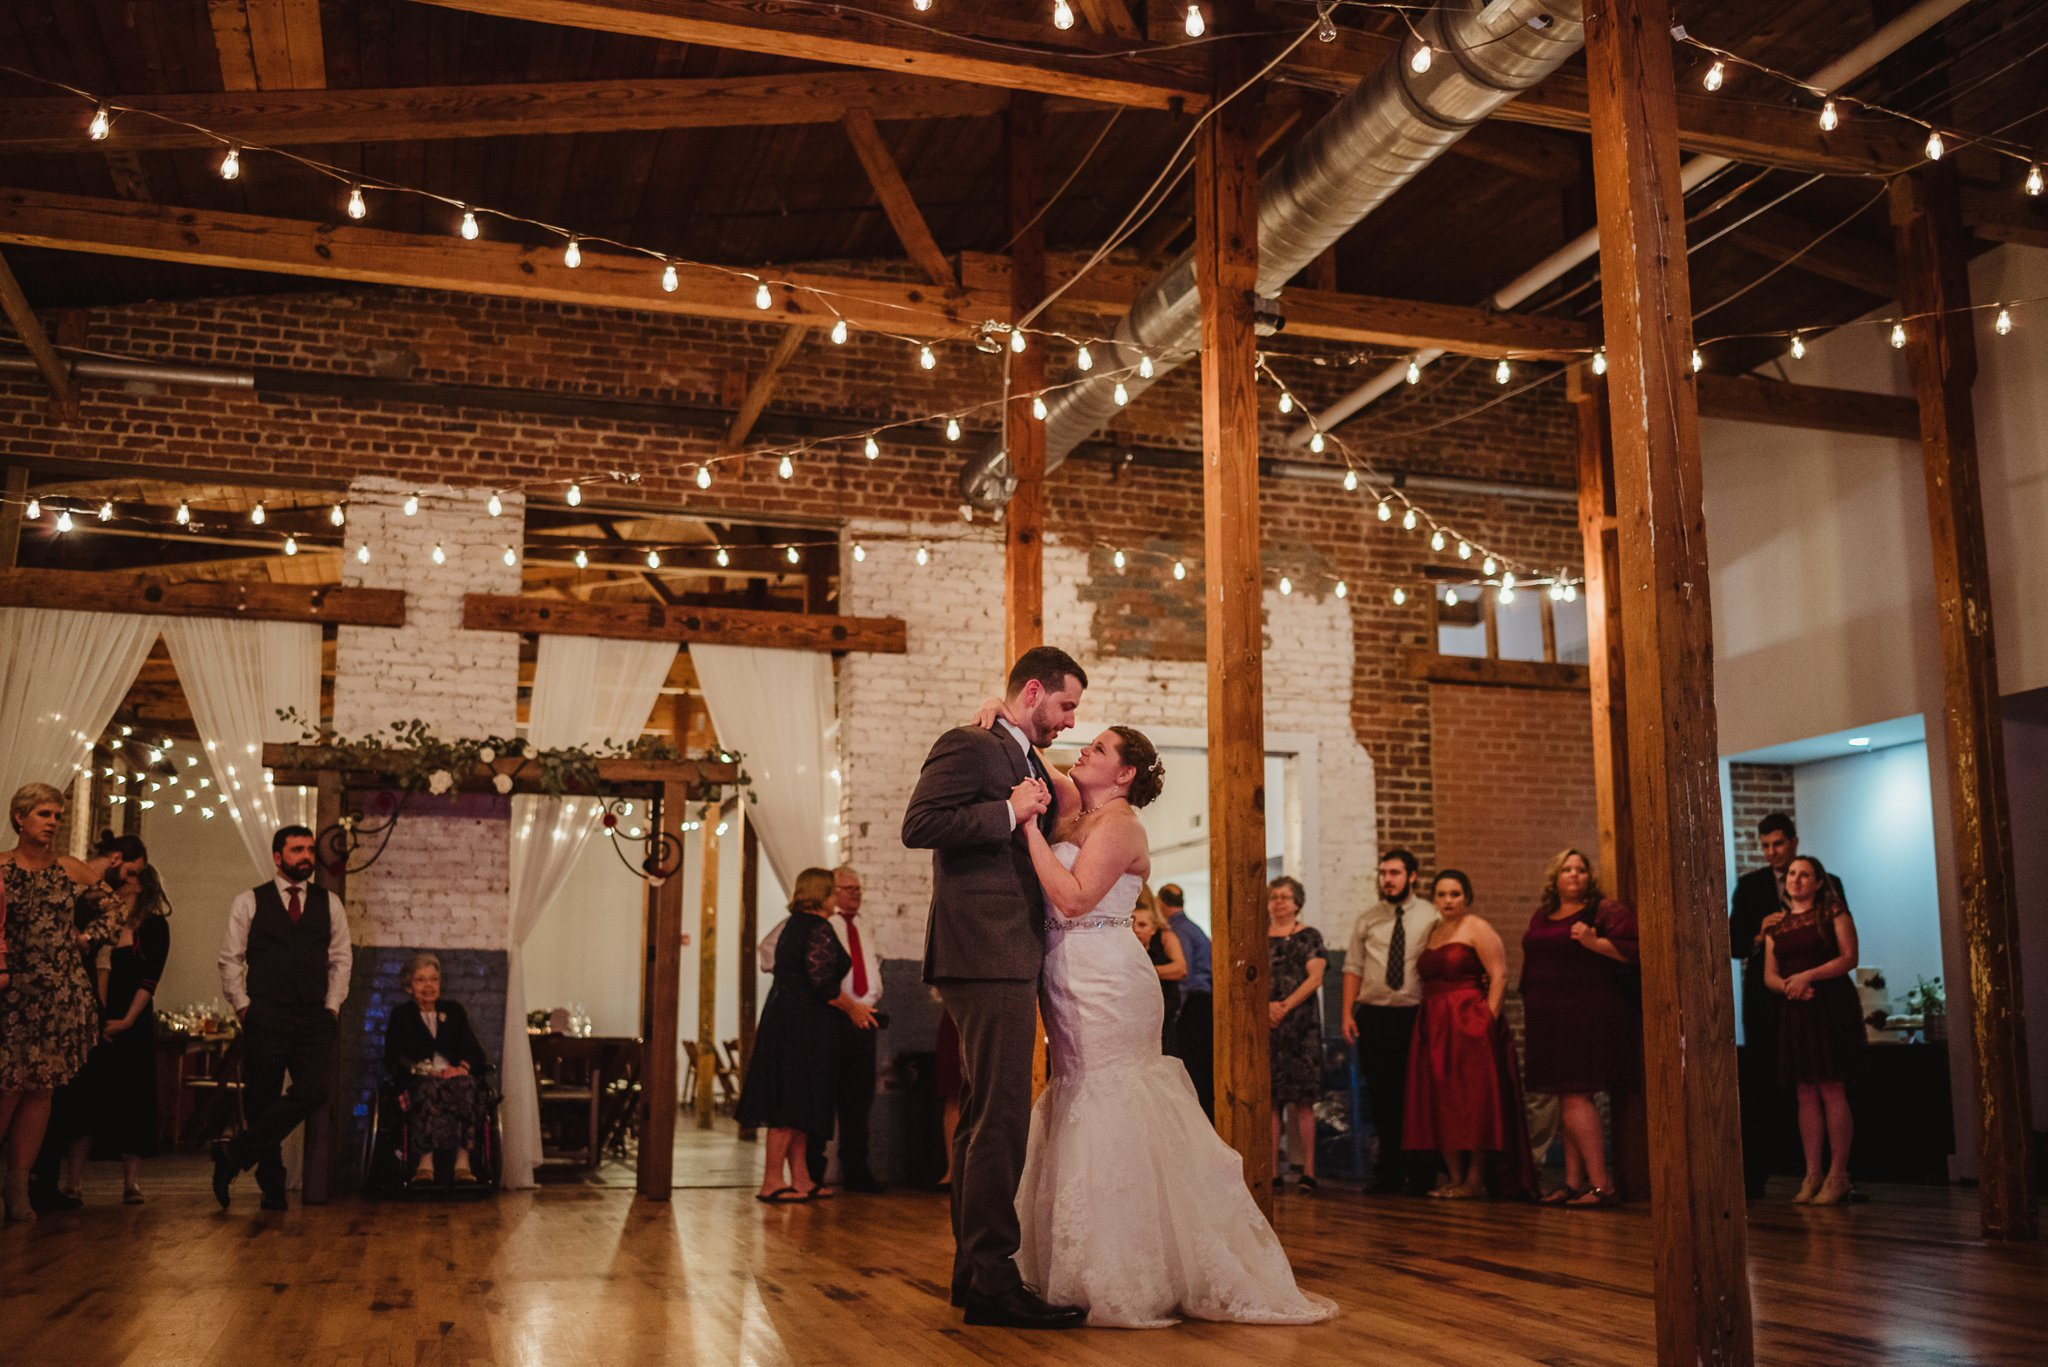 The bride and groom danced together for their first dance at their wedding reception in Raleigh, North Carolina, pictures by Rose Trail Images.